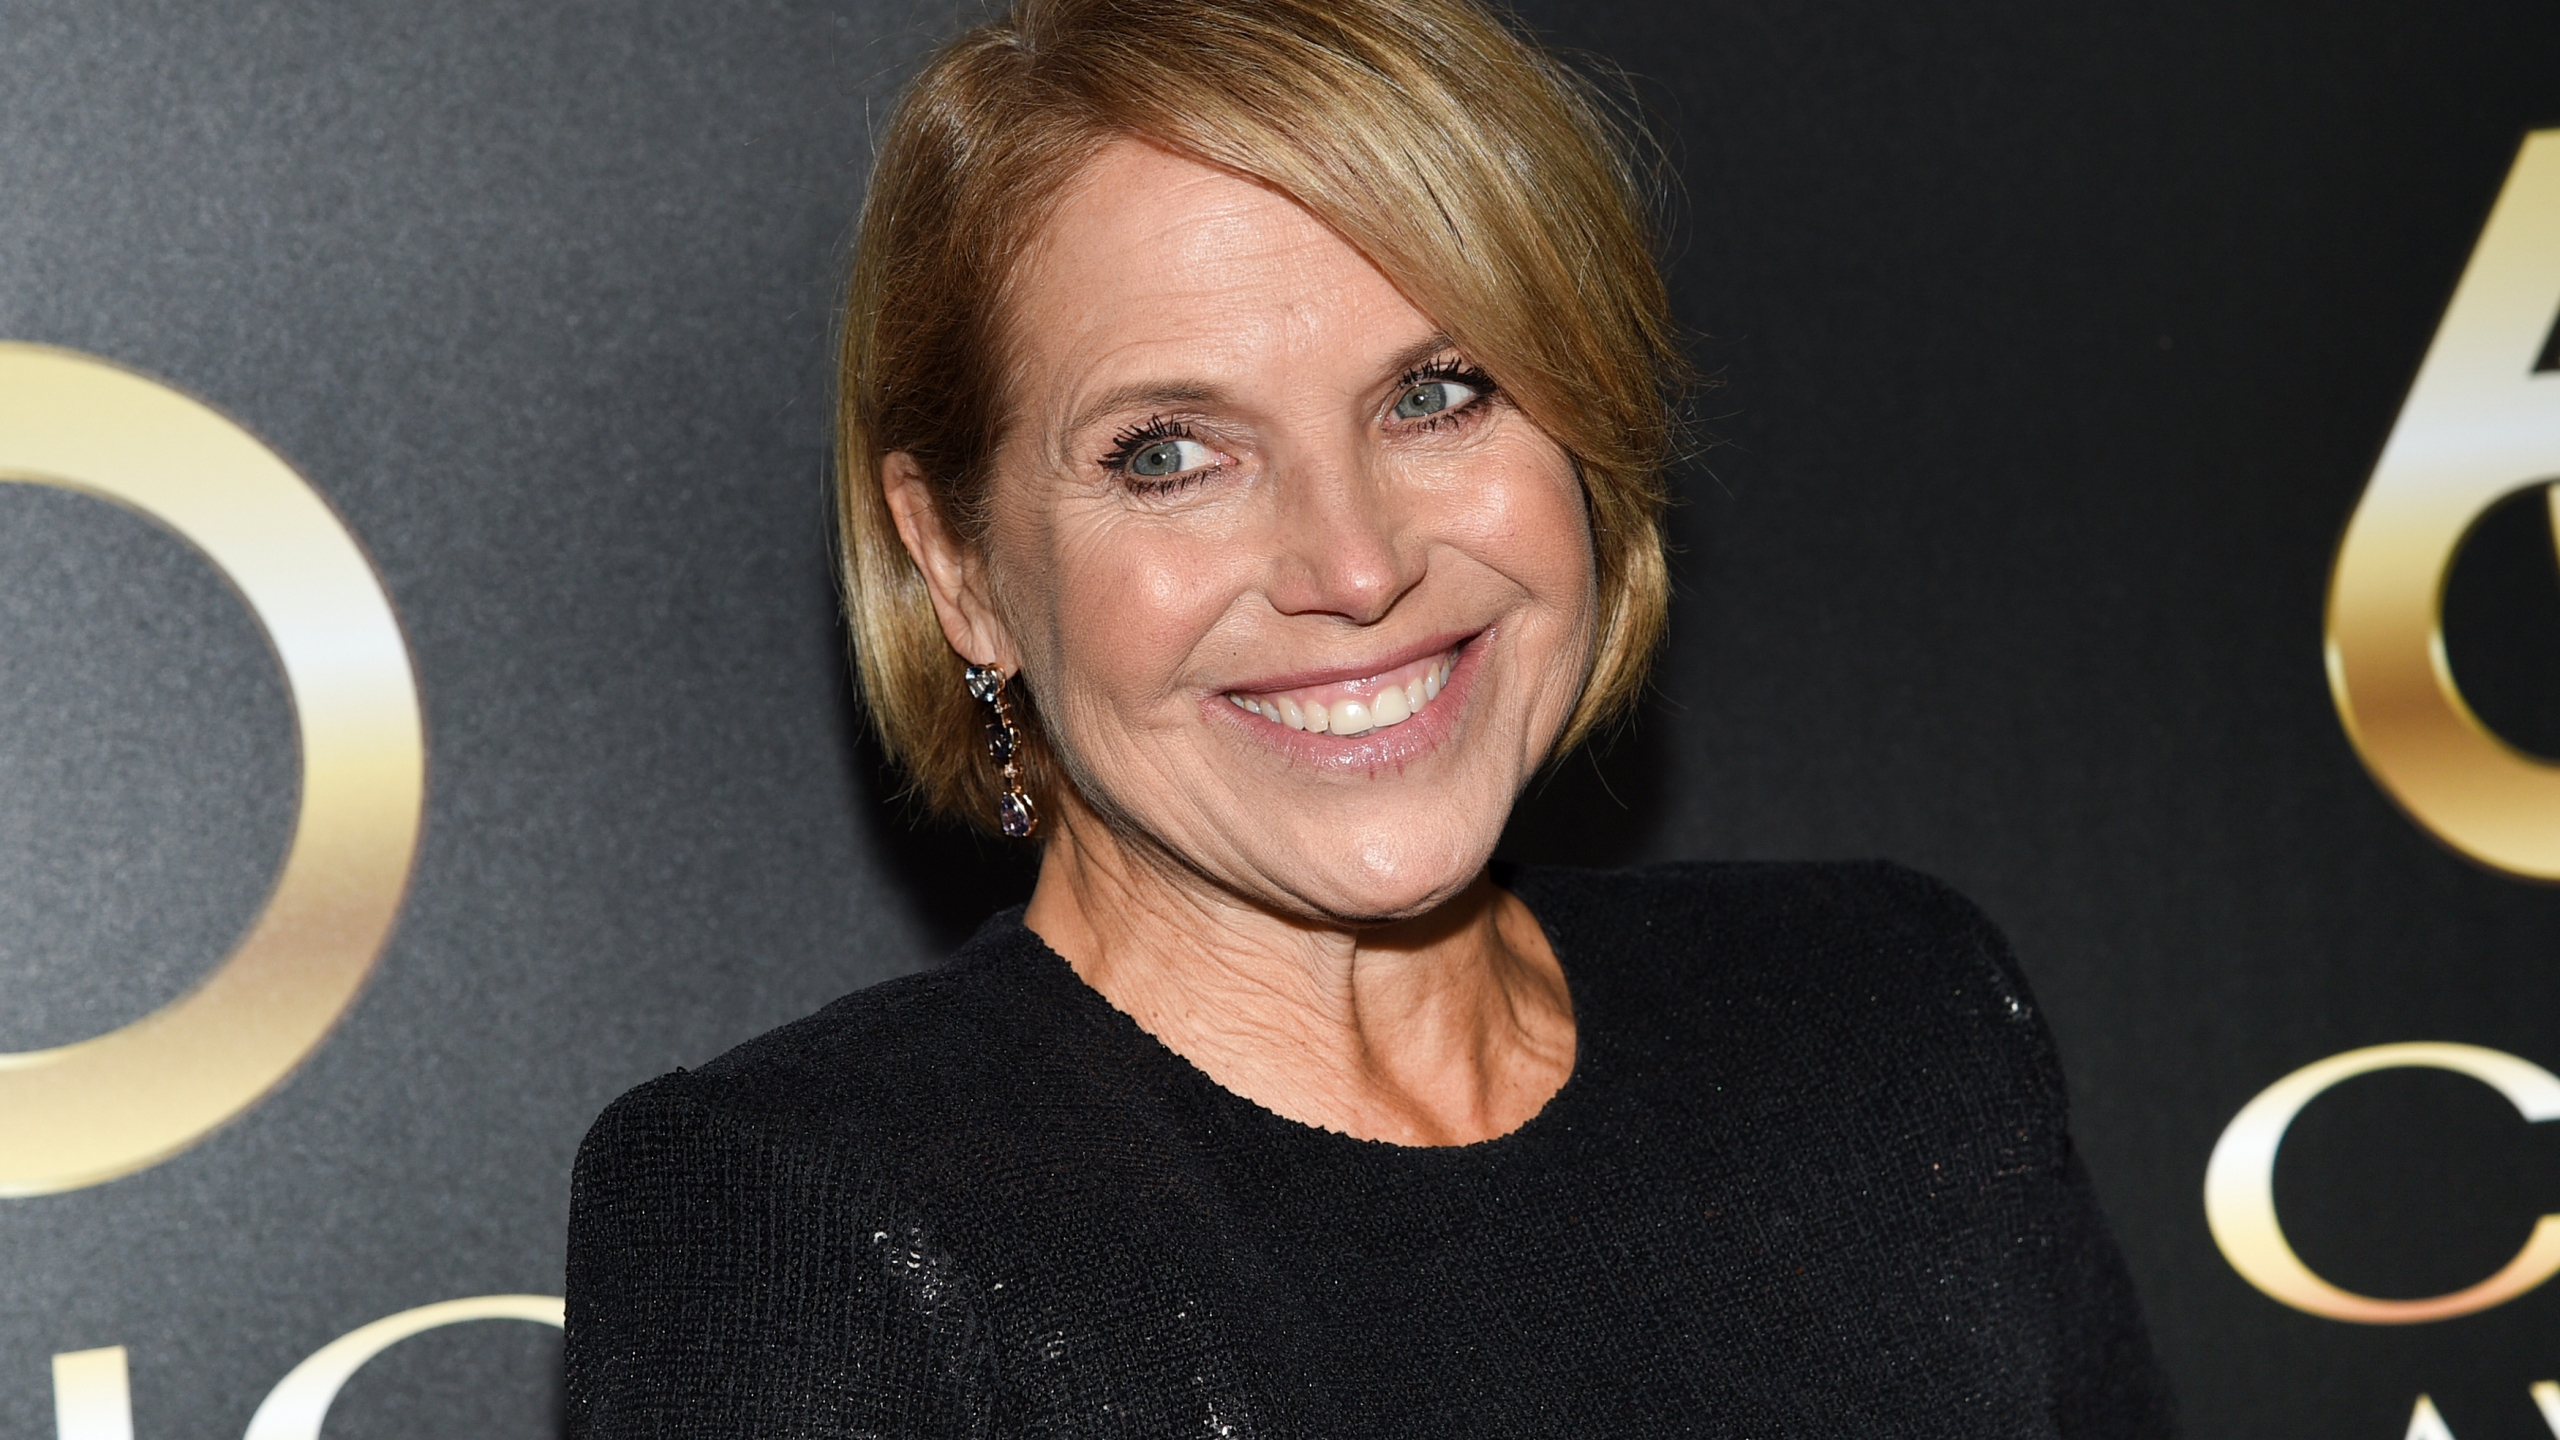 Television journalist Katie Couric attends the 60th annual Clio Awards at The Manhattan Center on Wednesday, Sept. 25, 2019, in New York. (Photo by Evan Agostini/Invision/AP)